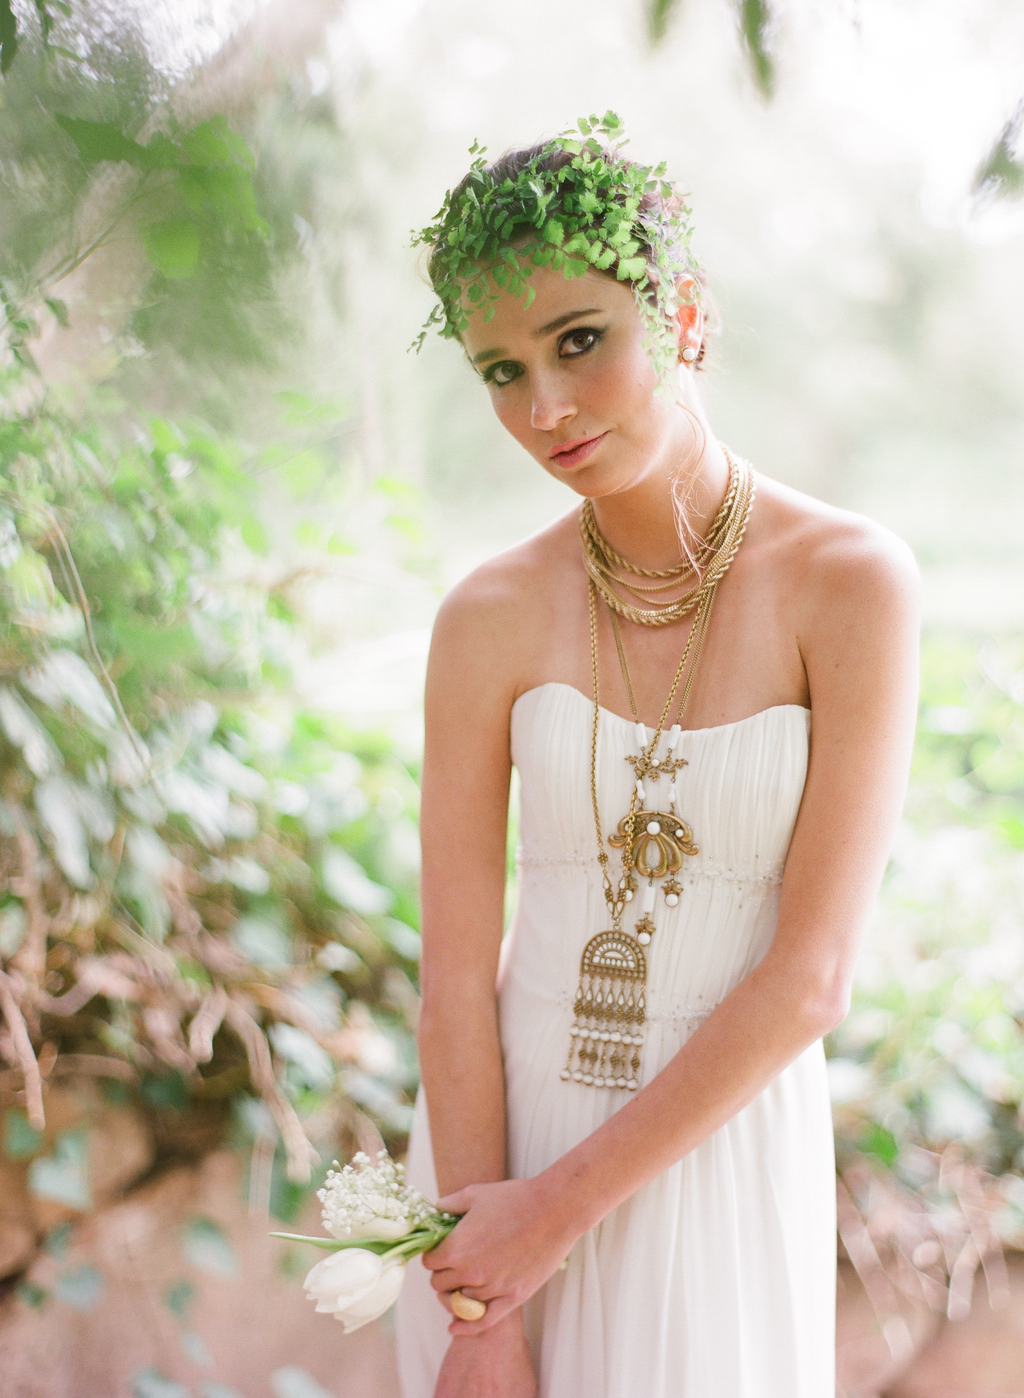 Styled-wedding-santa-barbara-chic-beaux-arts-phtographie-italian-bohemian-wedding-bride-wedding-dress-necklace-gold-105.full